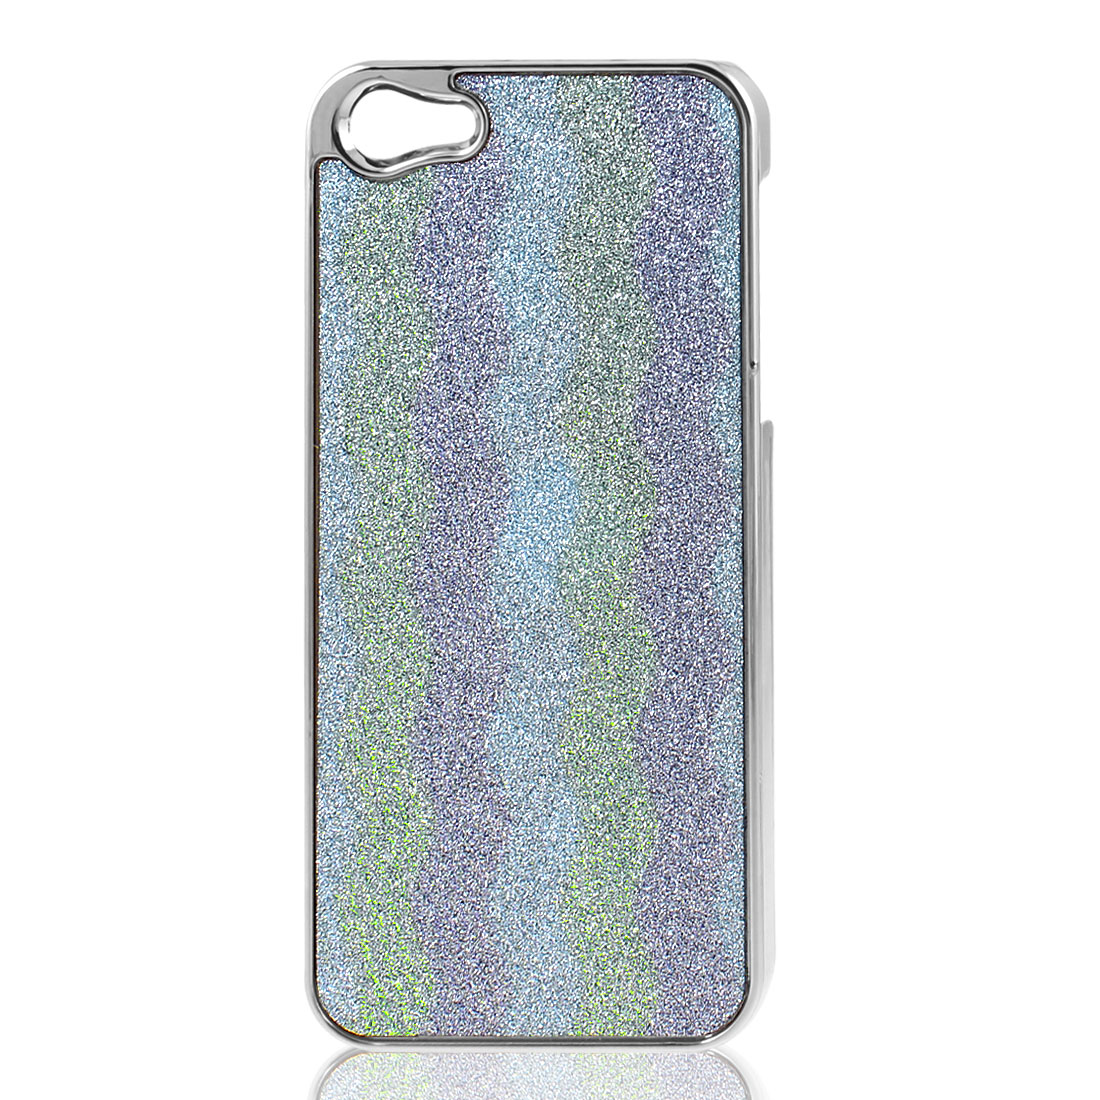 Glittery Plastic Back Case Cover for Apple iPhone 5 5G 5th Gen